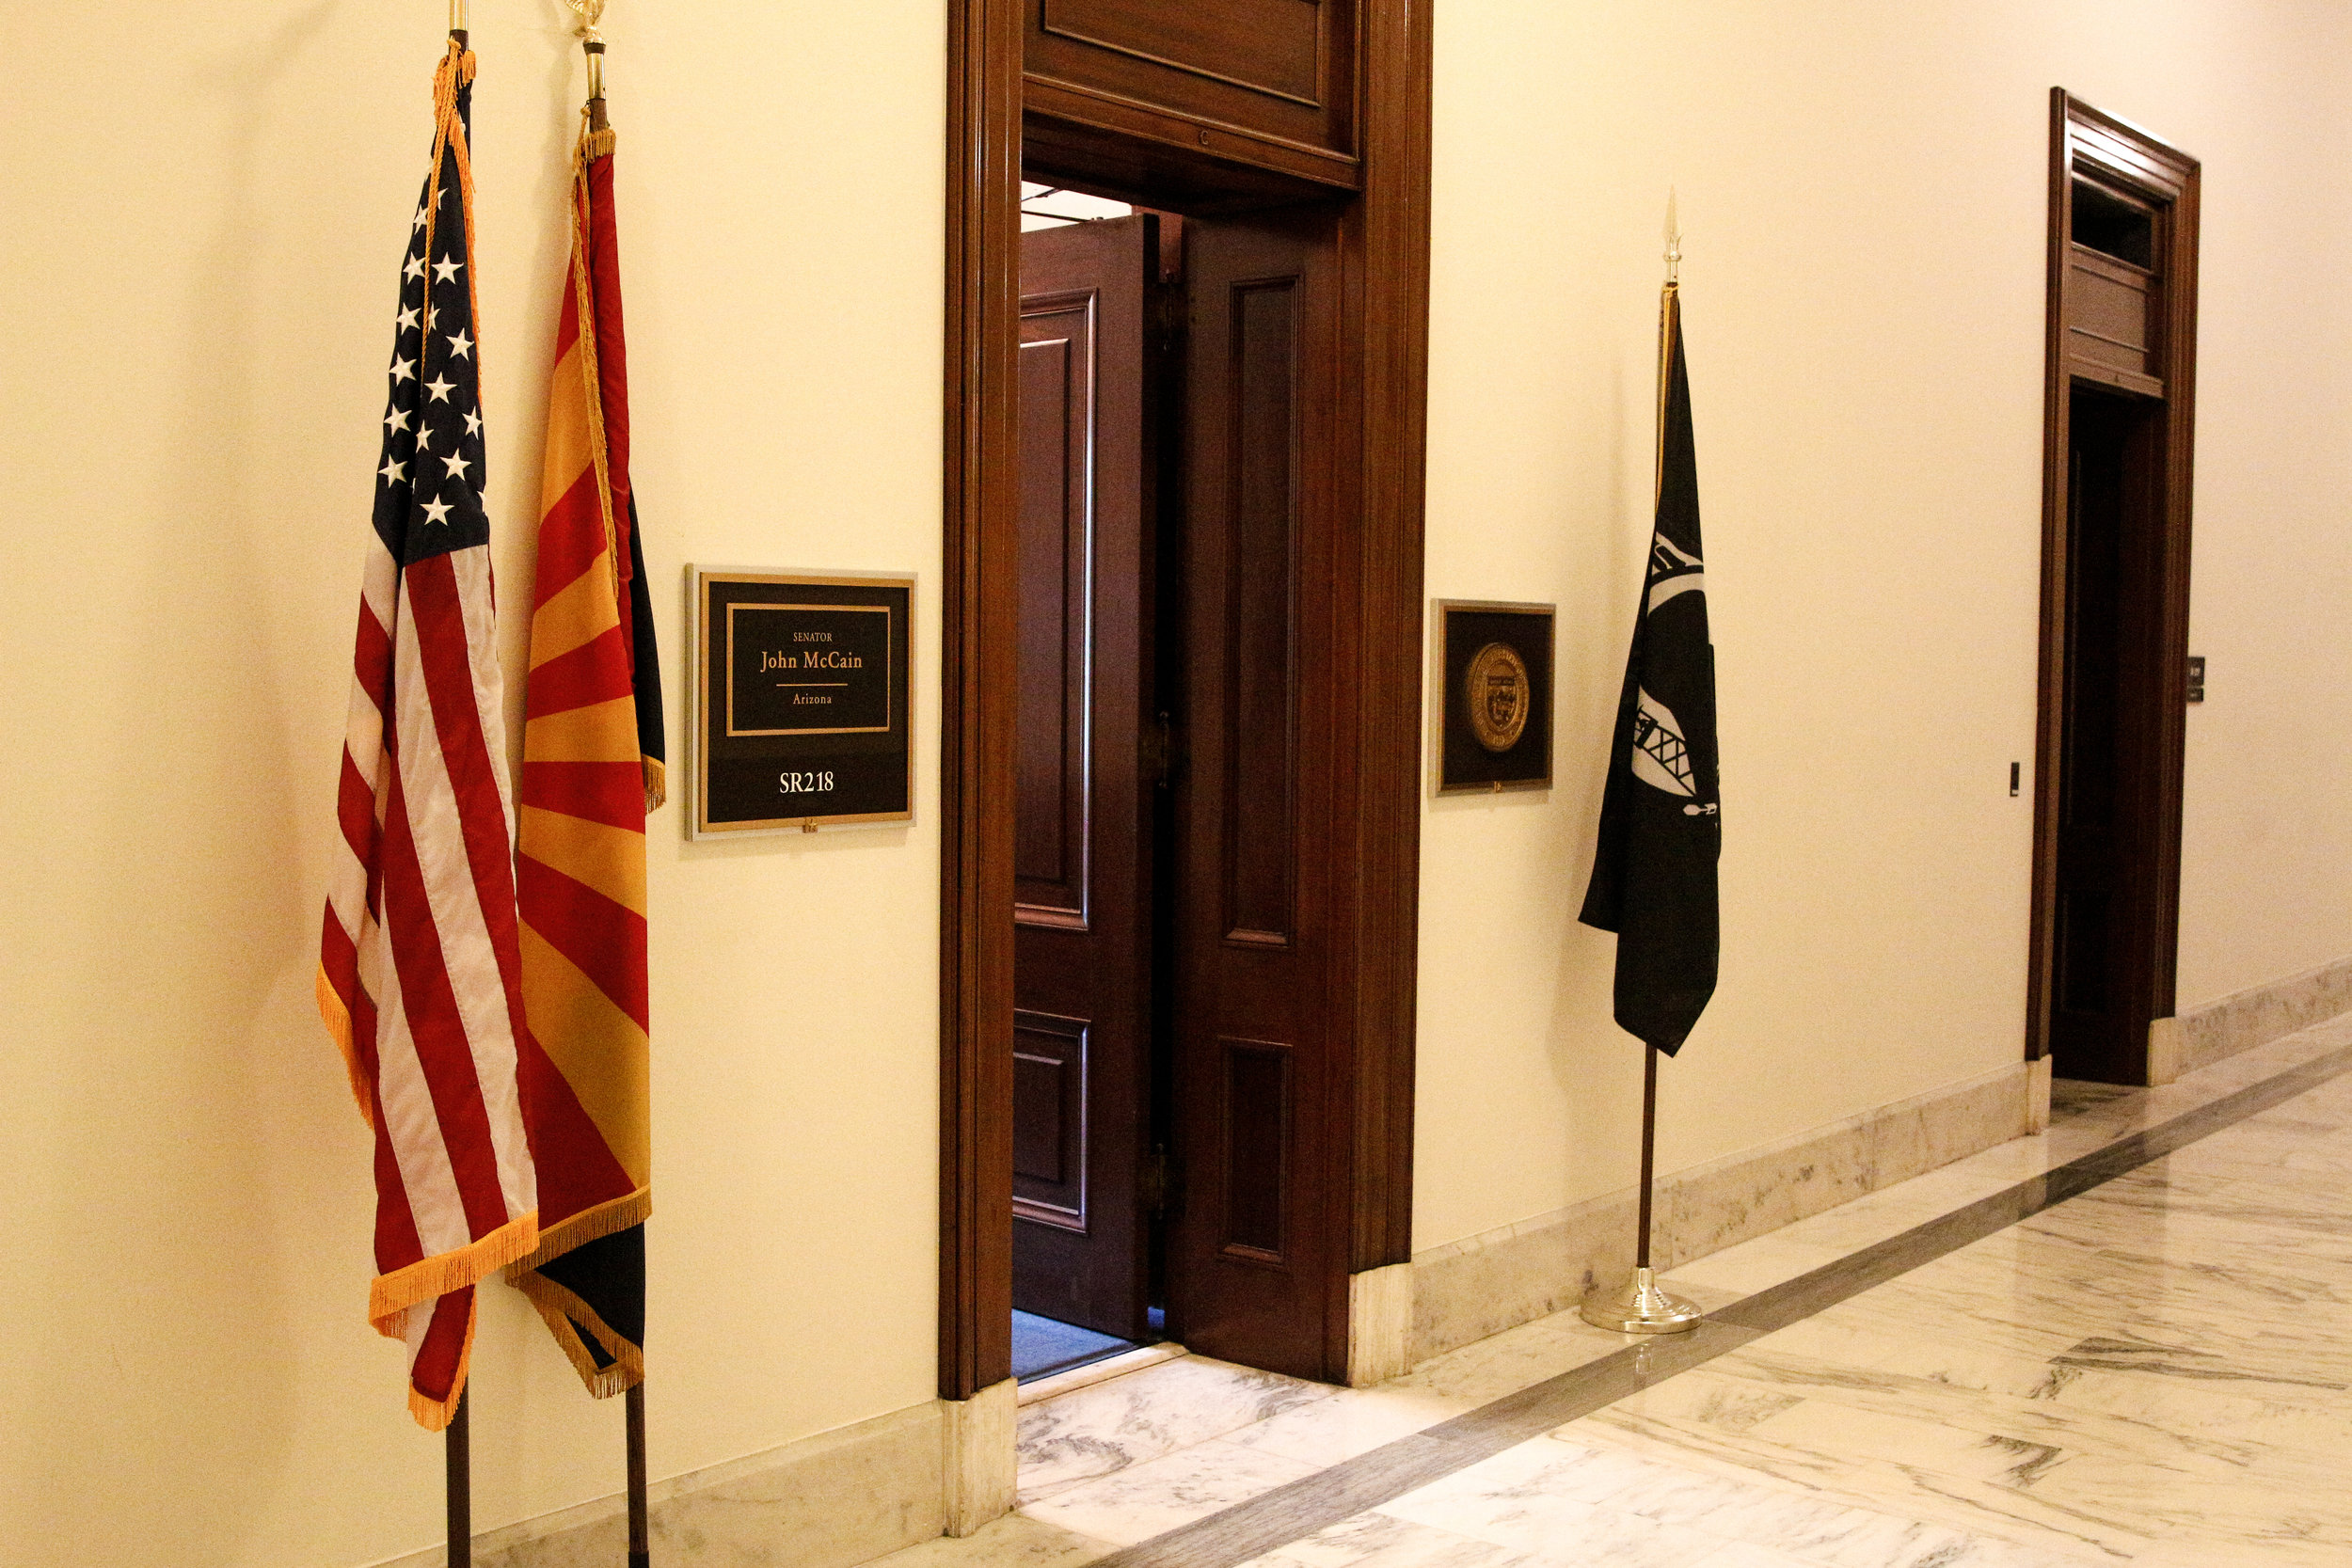 Vacant office of Sen. John McCain